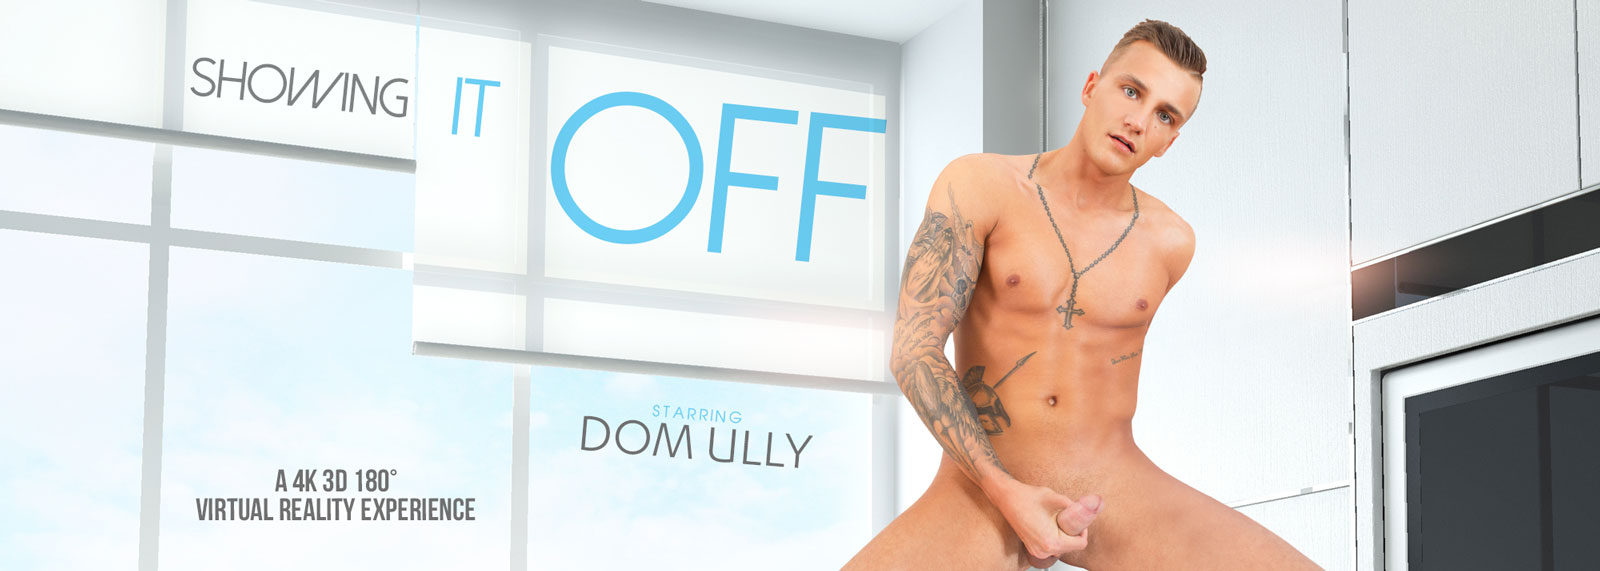 Showing it Off - VR Porn Video, Starring Dom Ully